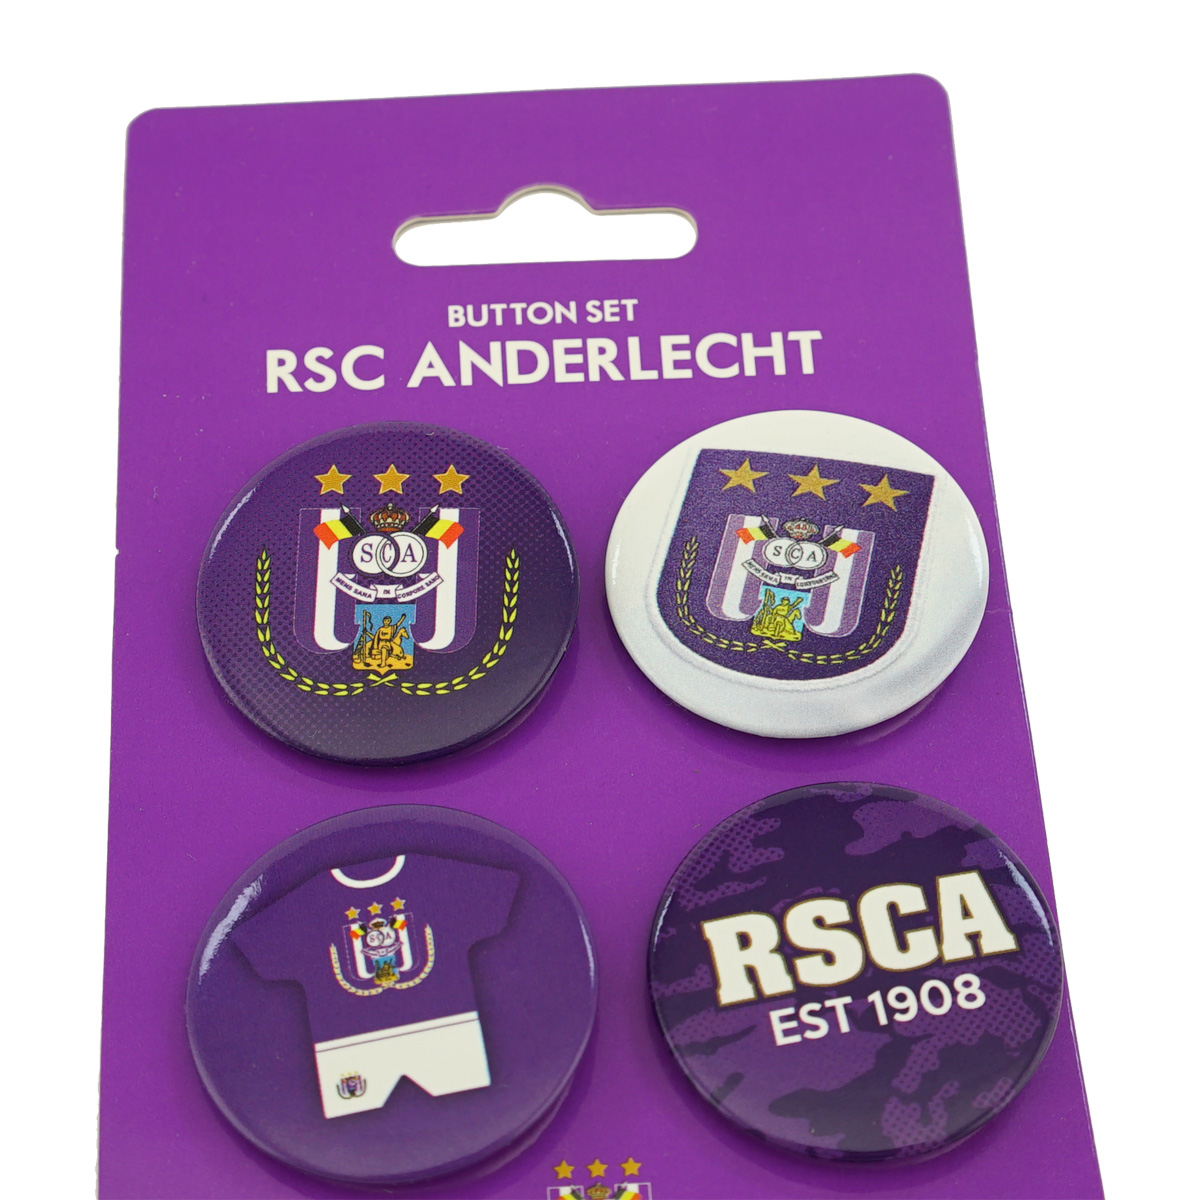 RSCA Buttons